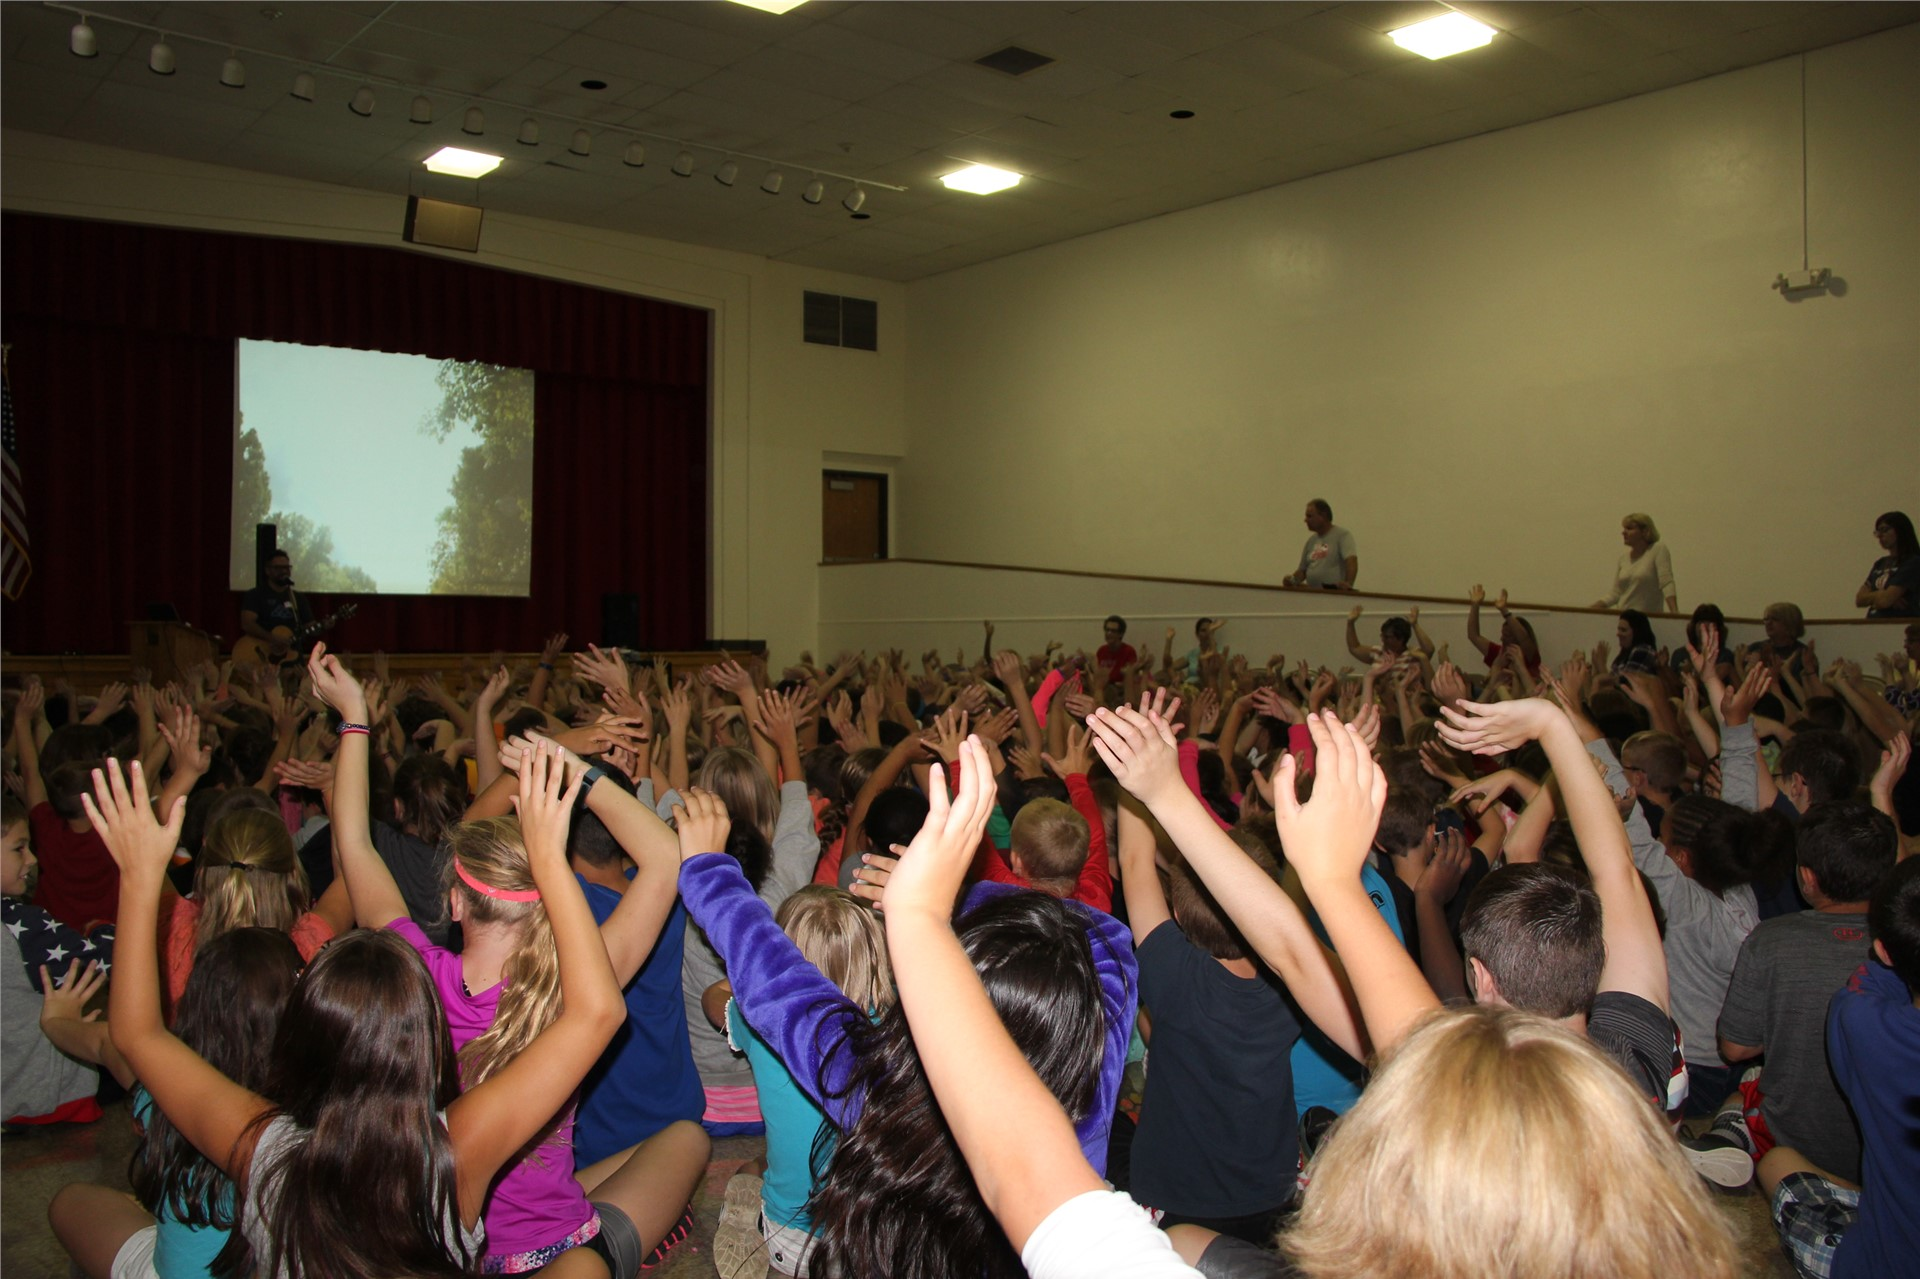 students put hands in air listening to music